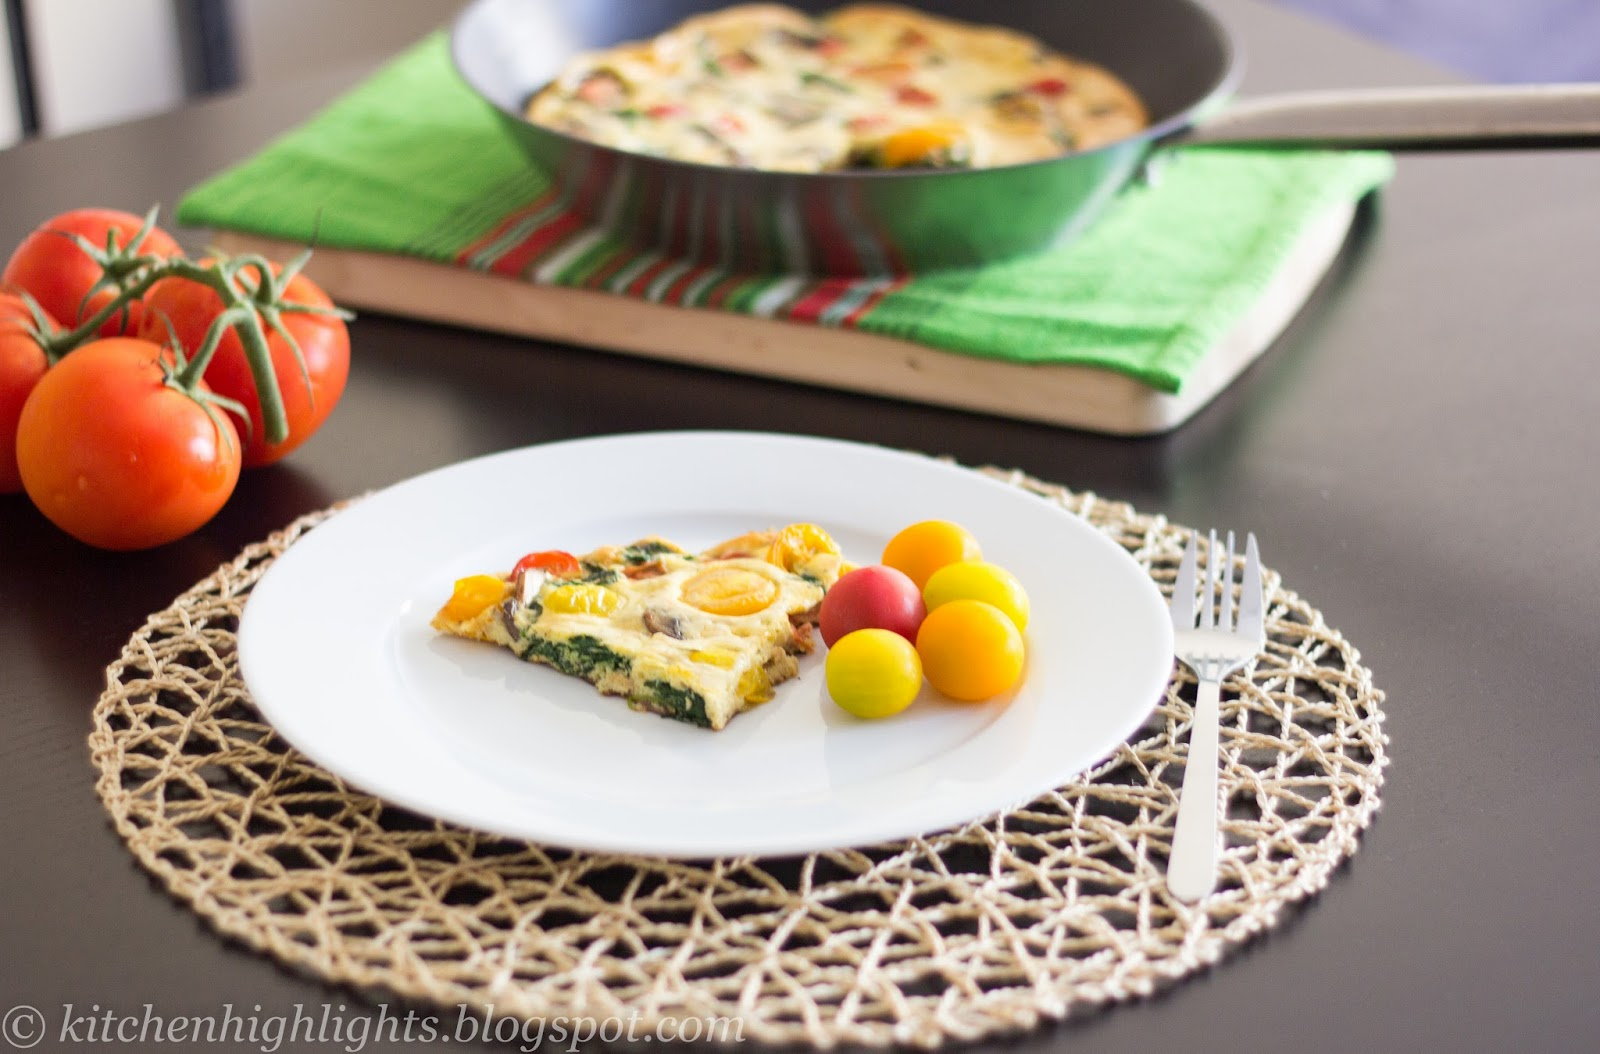 Frittata is a delicious Italian dish in which the egg is the main ingredient